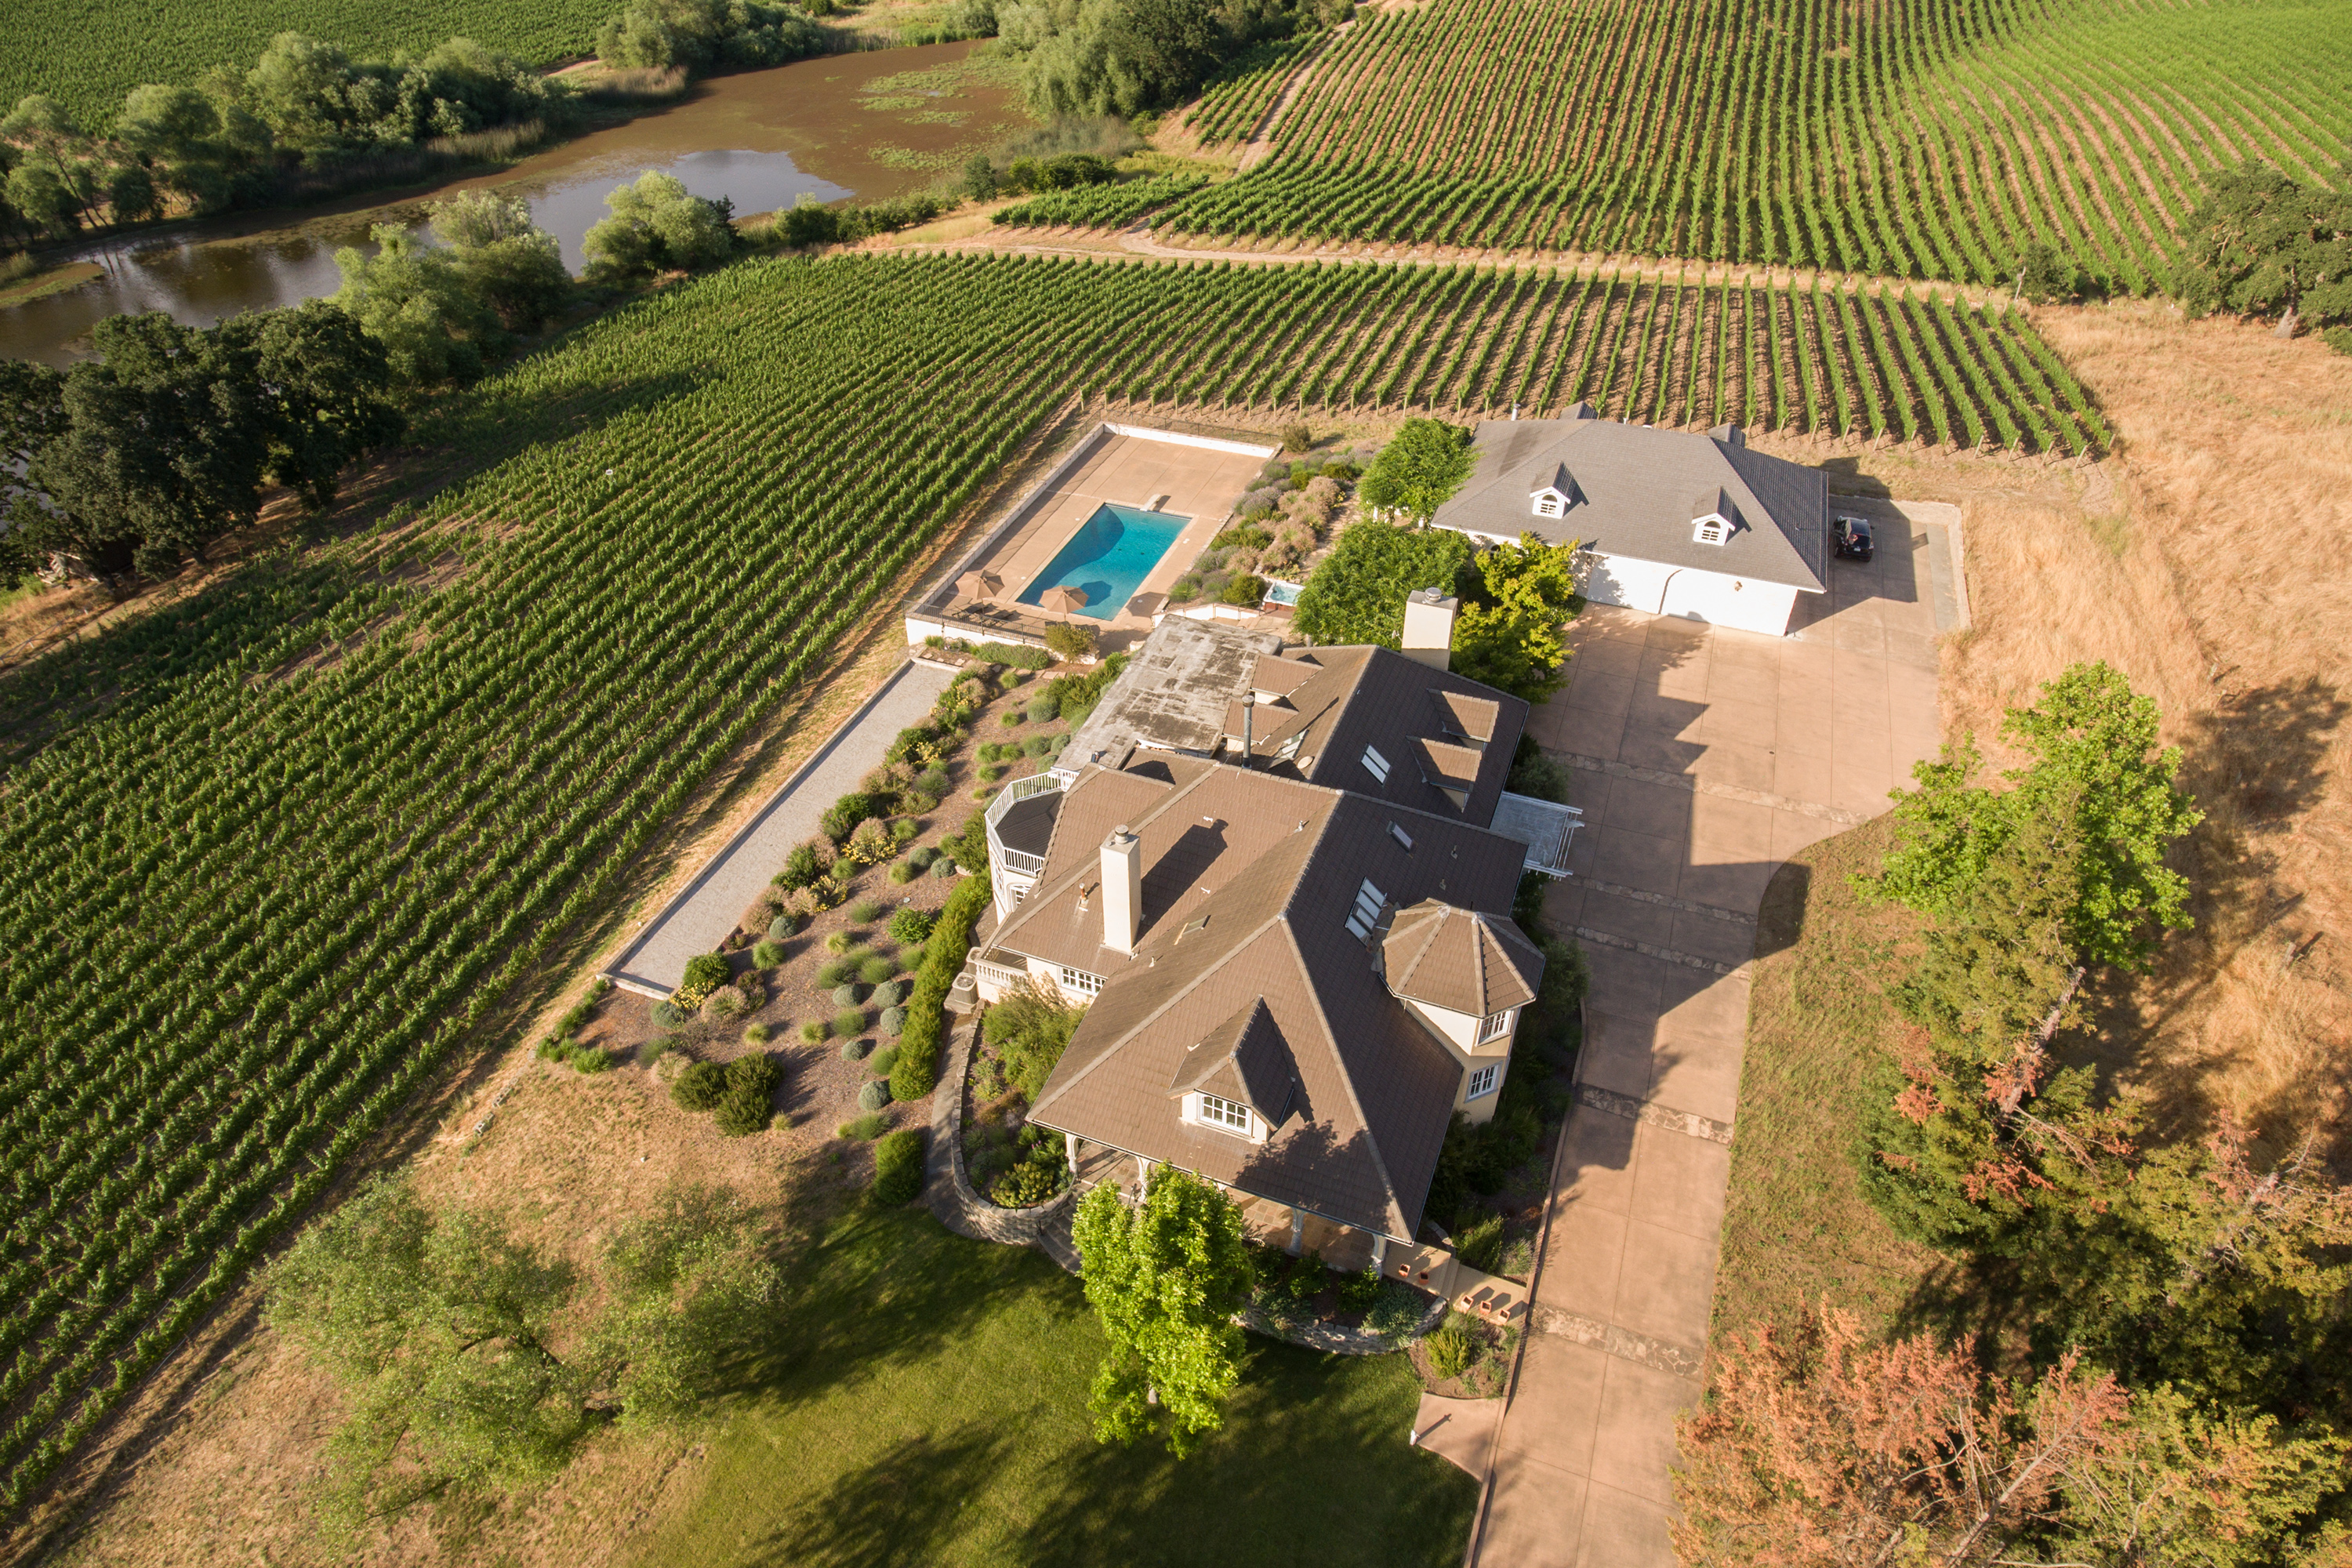 独户住宅 为 销售 在 Napa Valley Vineyard Estate with Panoramic Views 1100 Hardman Avenue 纳帕, 加利福尼亚州 94558 美国